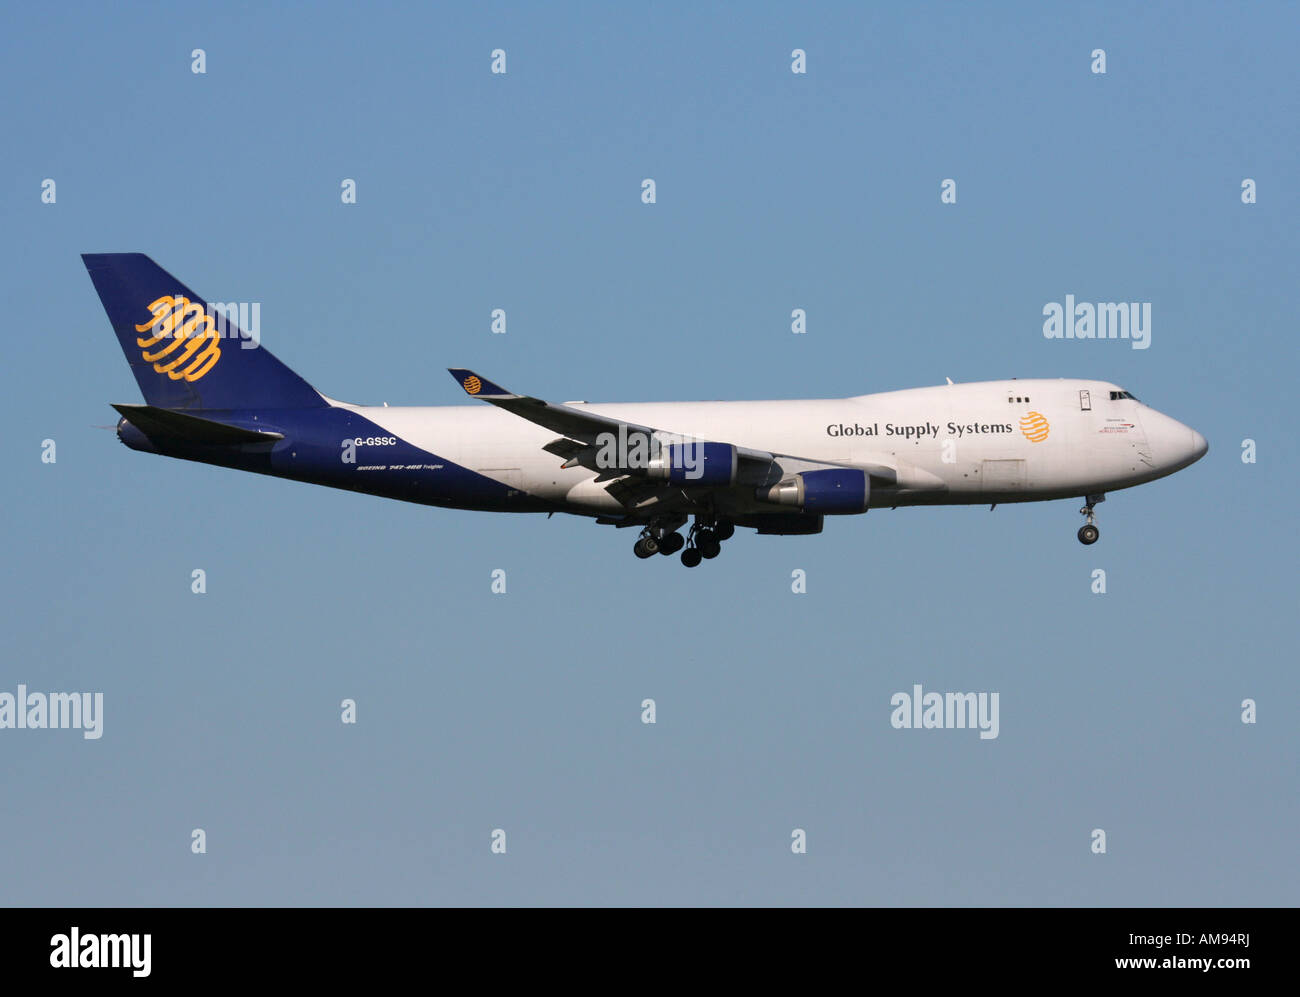 Commercial air freight transport. Global Supply Systems Boeing 747-400F cargo jet on approach - Stock Image